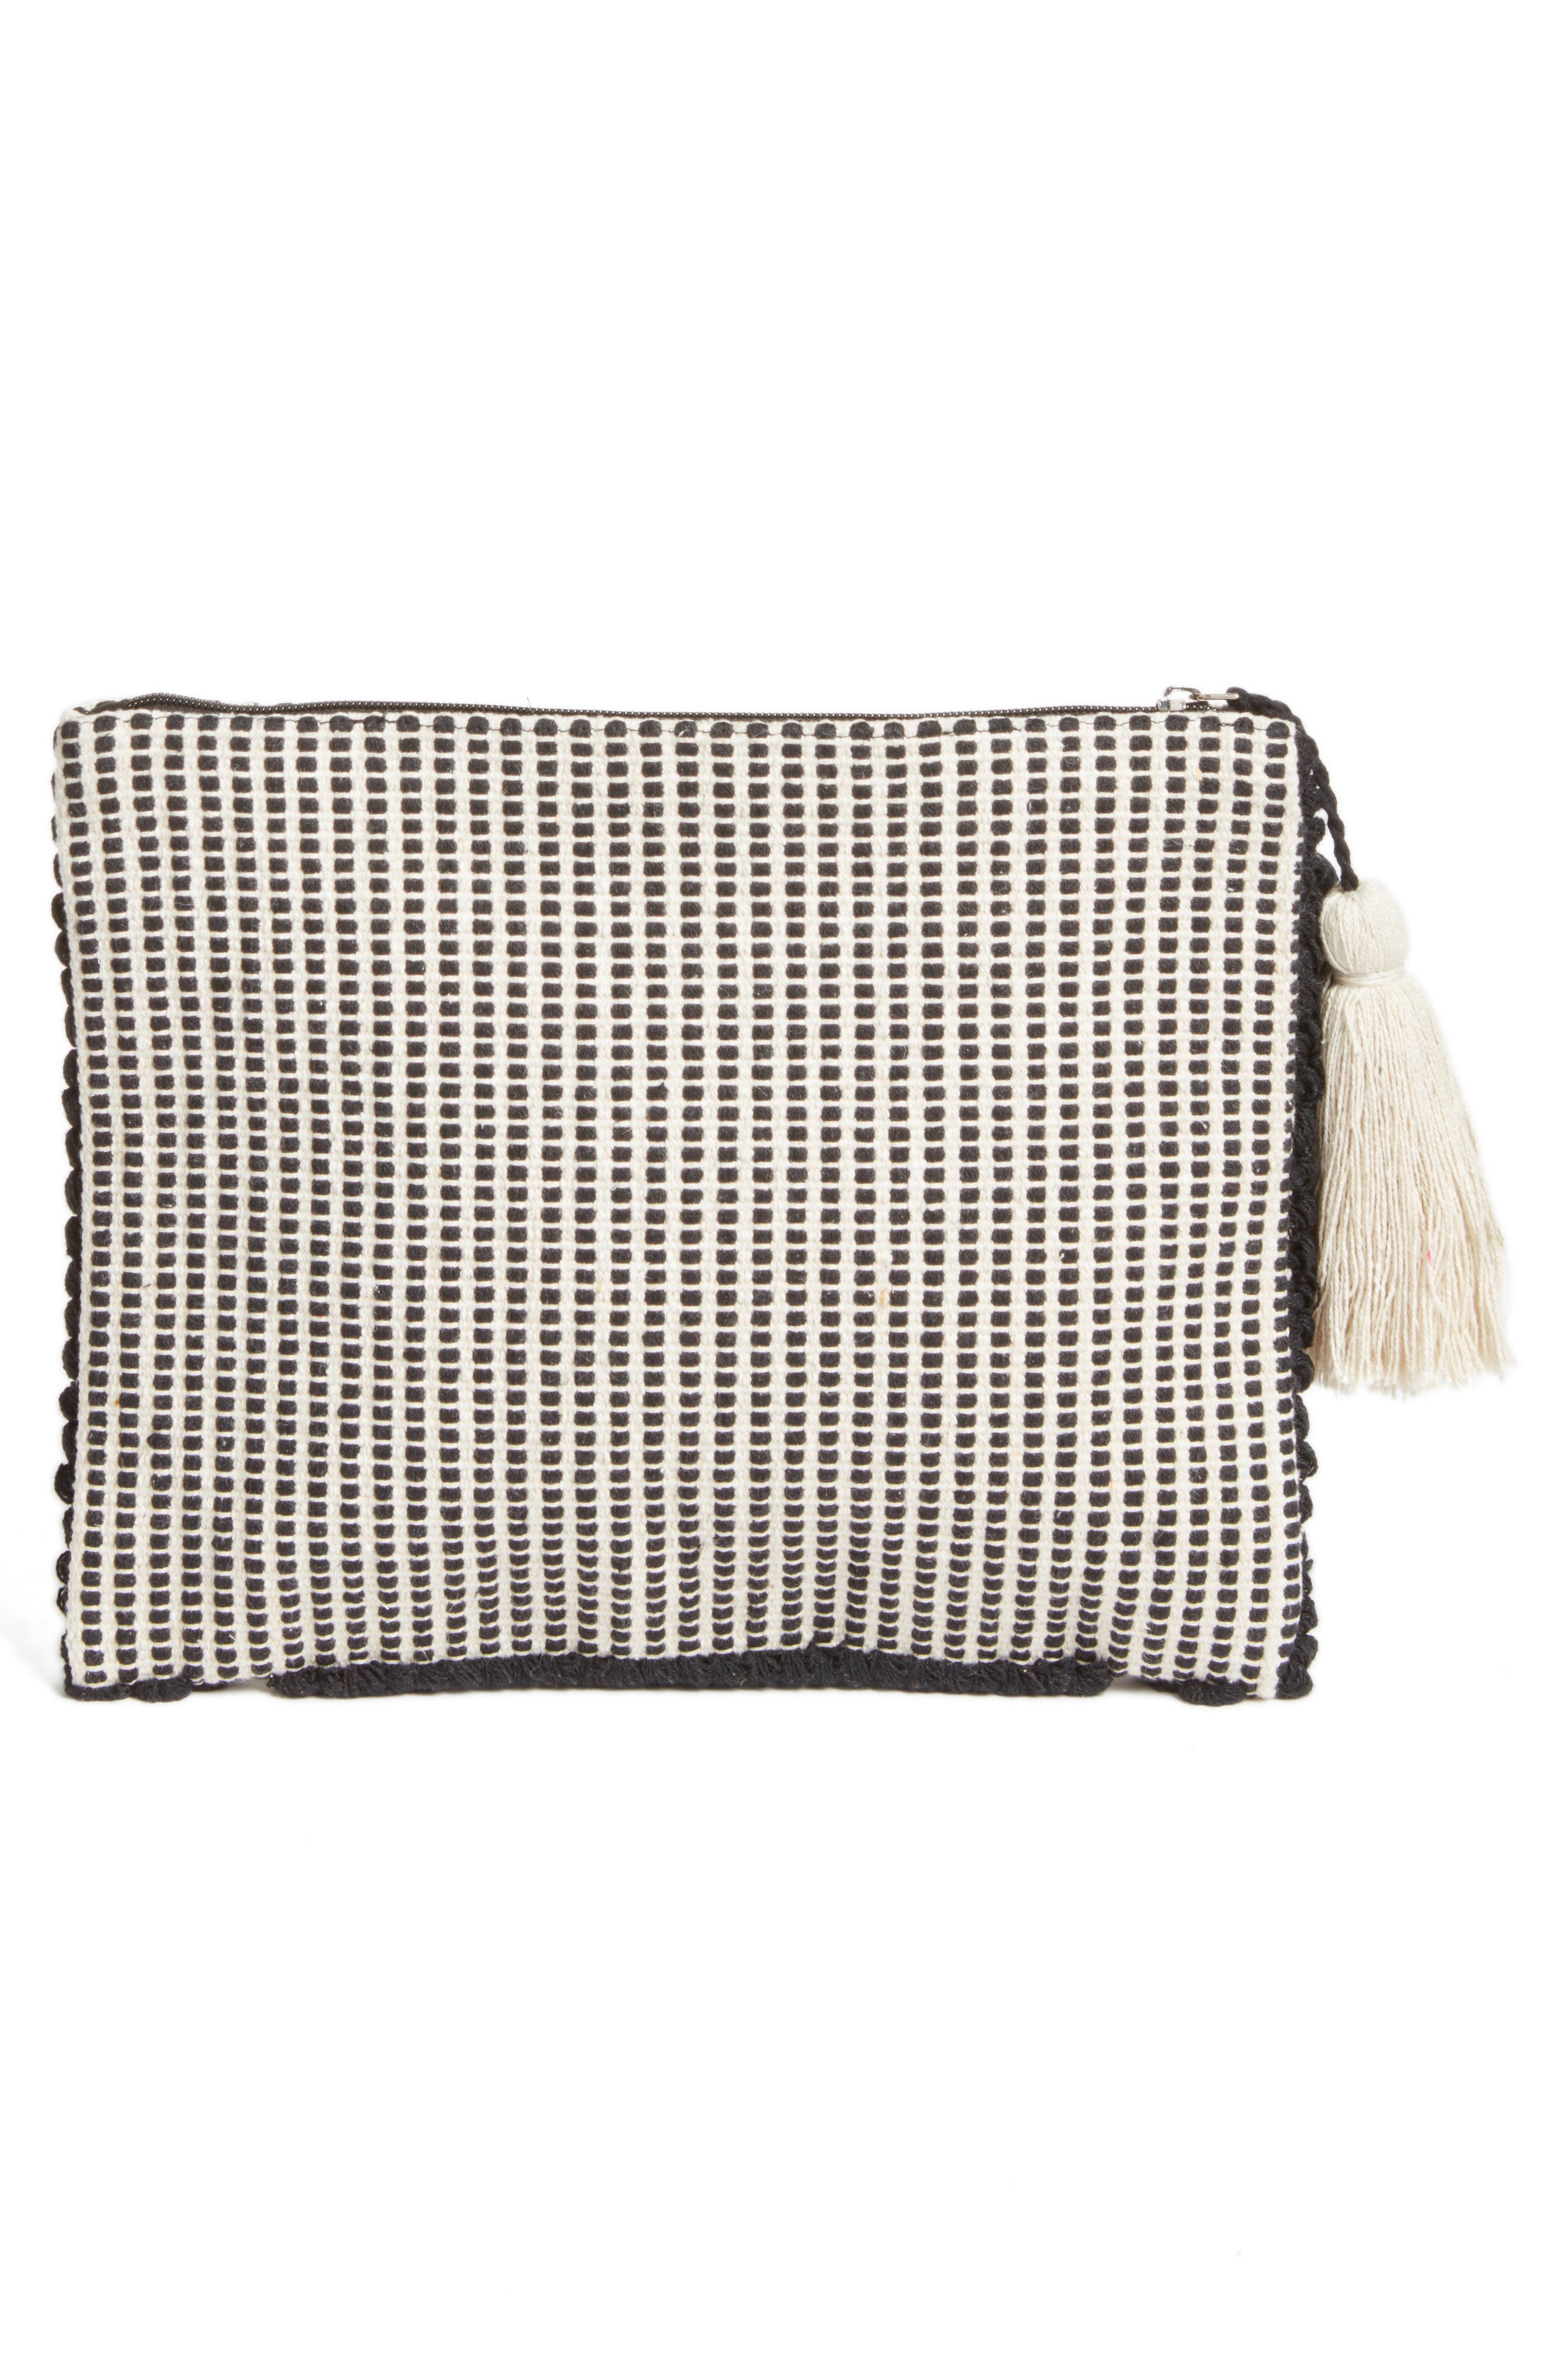 Palisades Tasseled Woven Clutch,                             Alternate thumbnail 17, color,